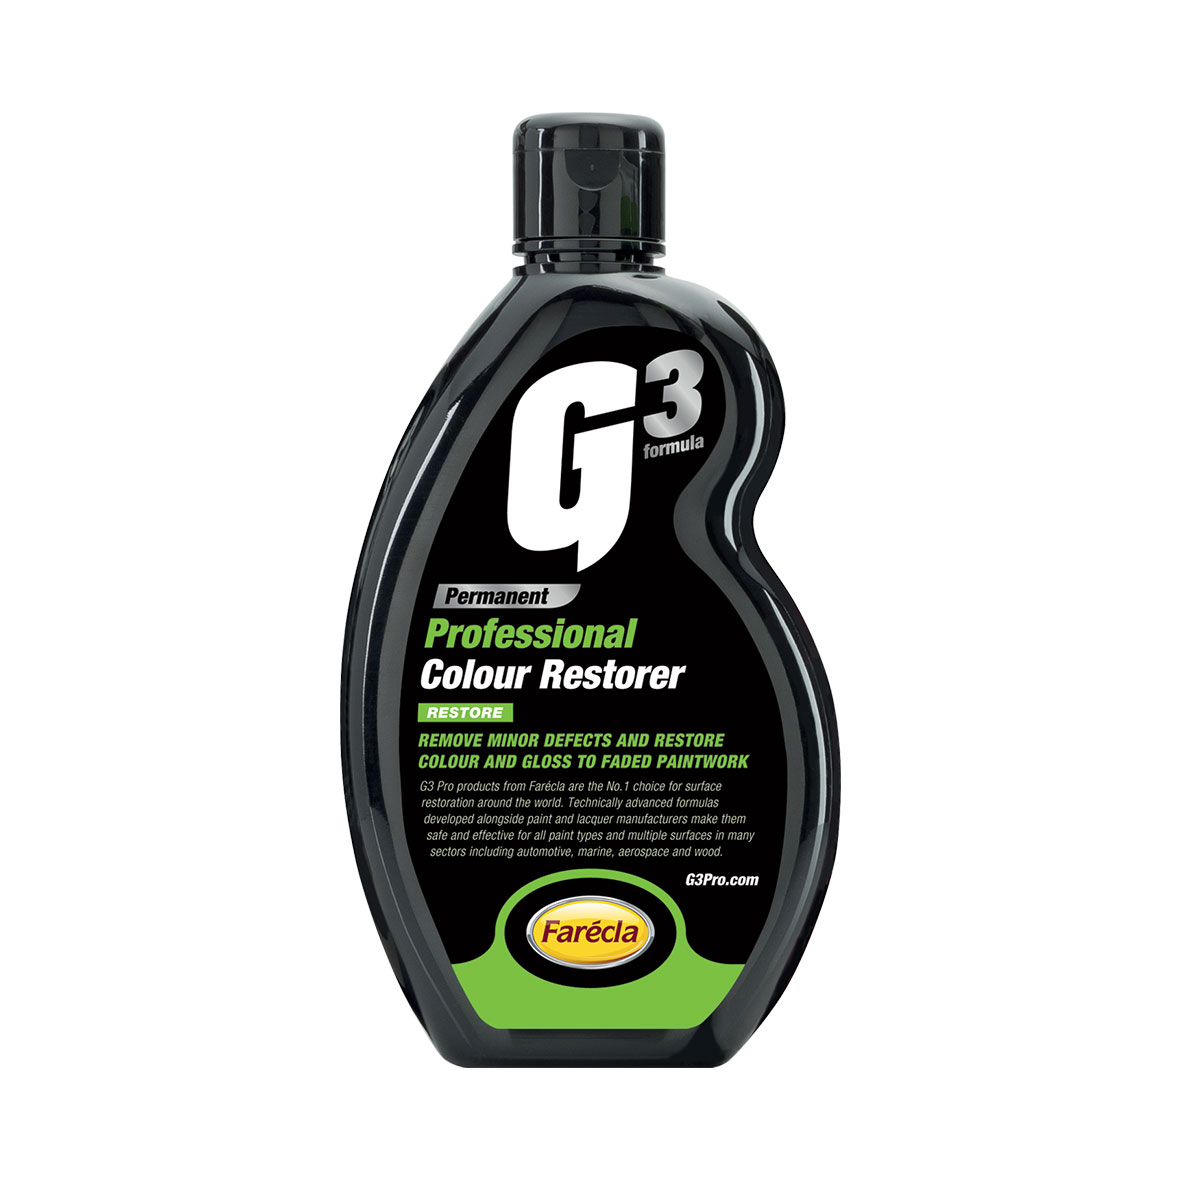 G3 Professional Colour Restorer